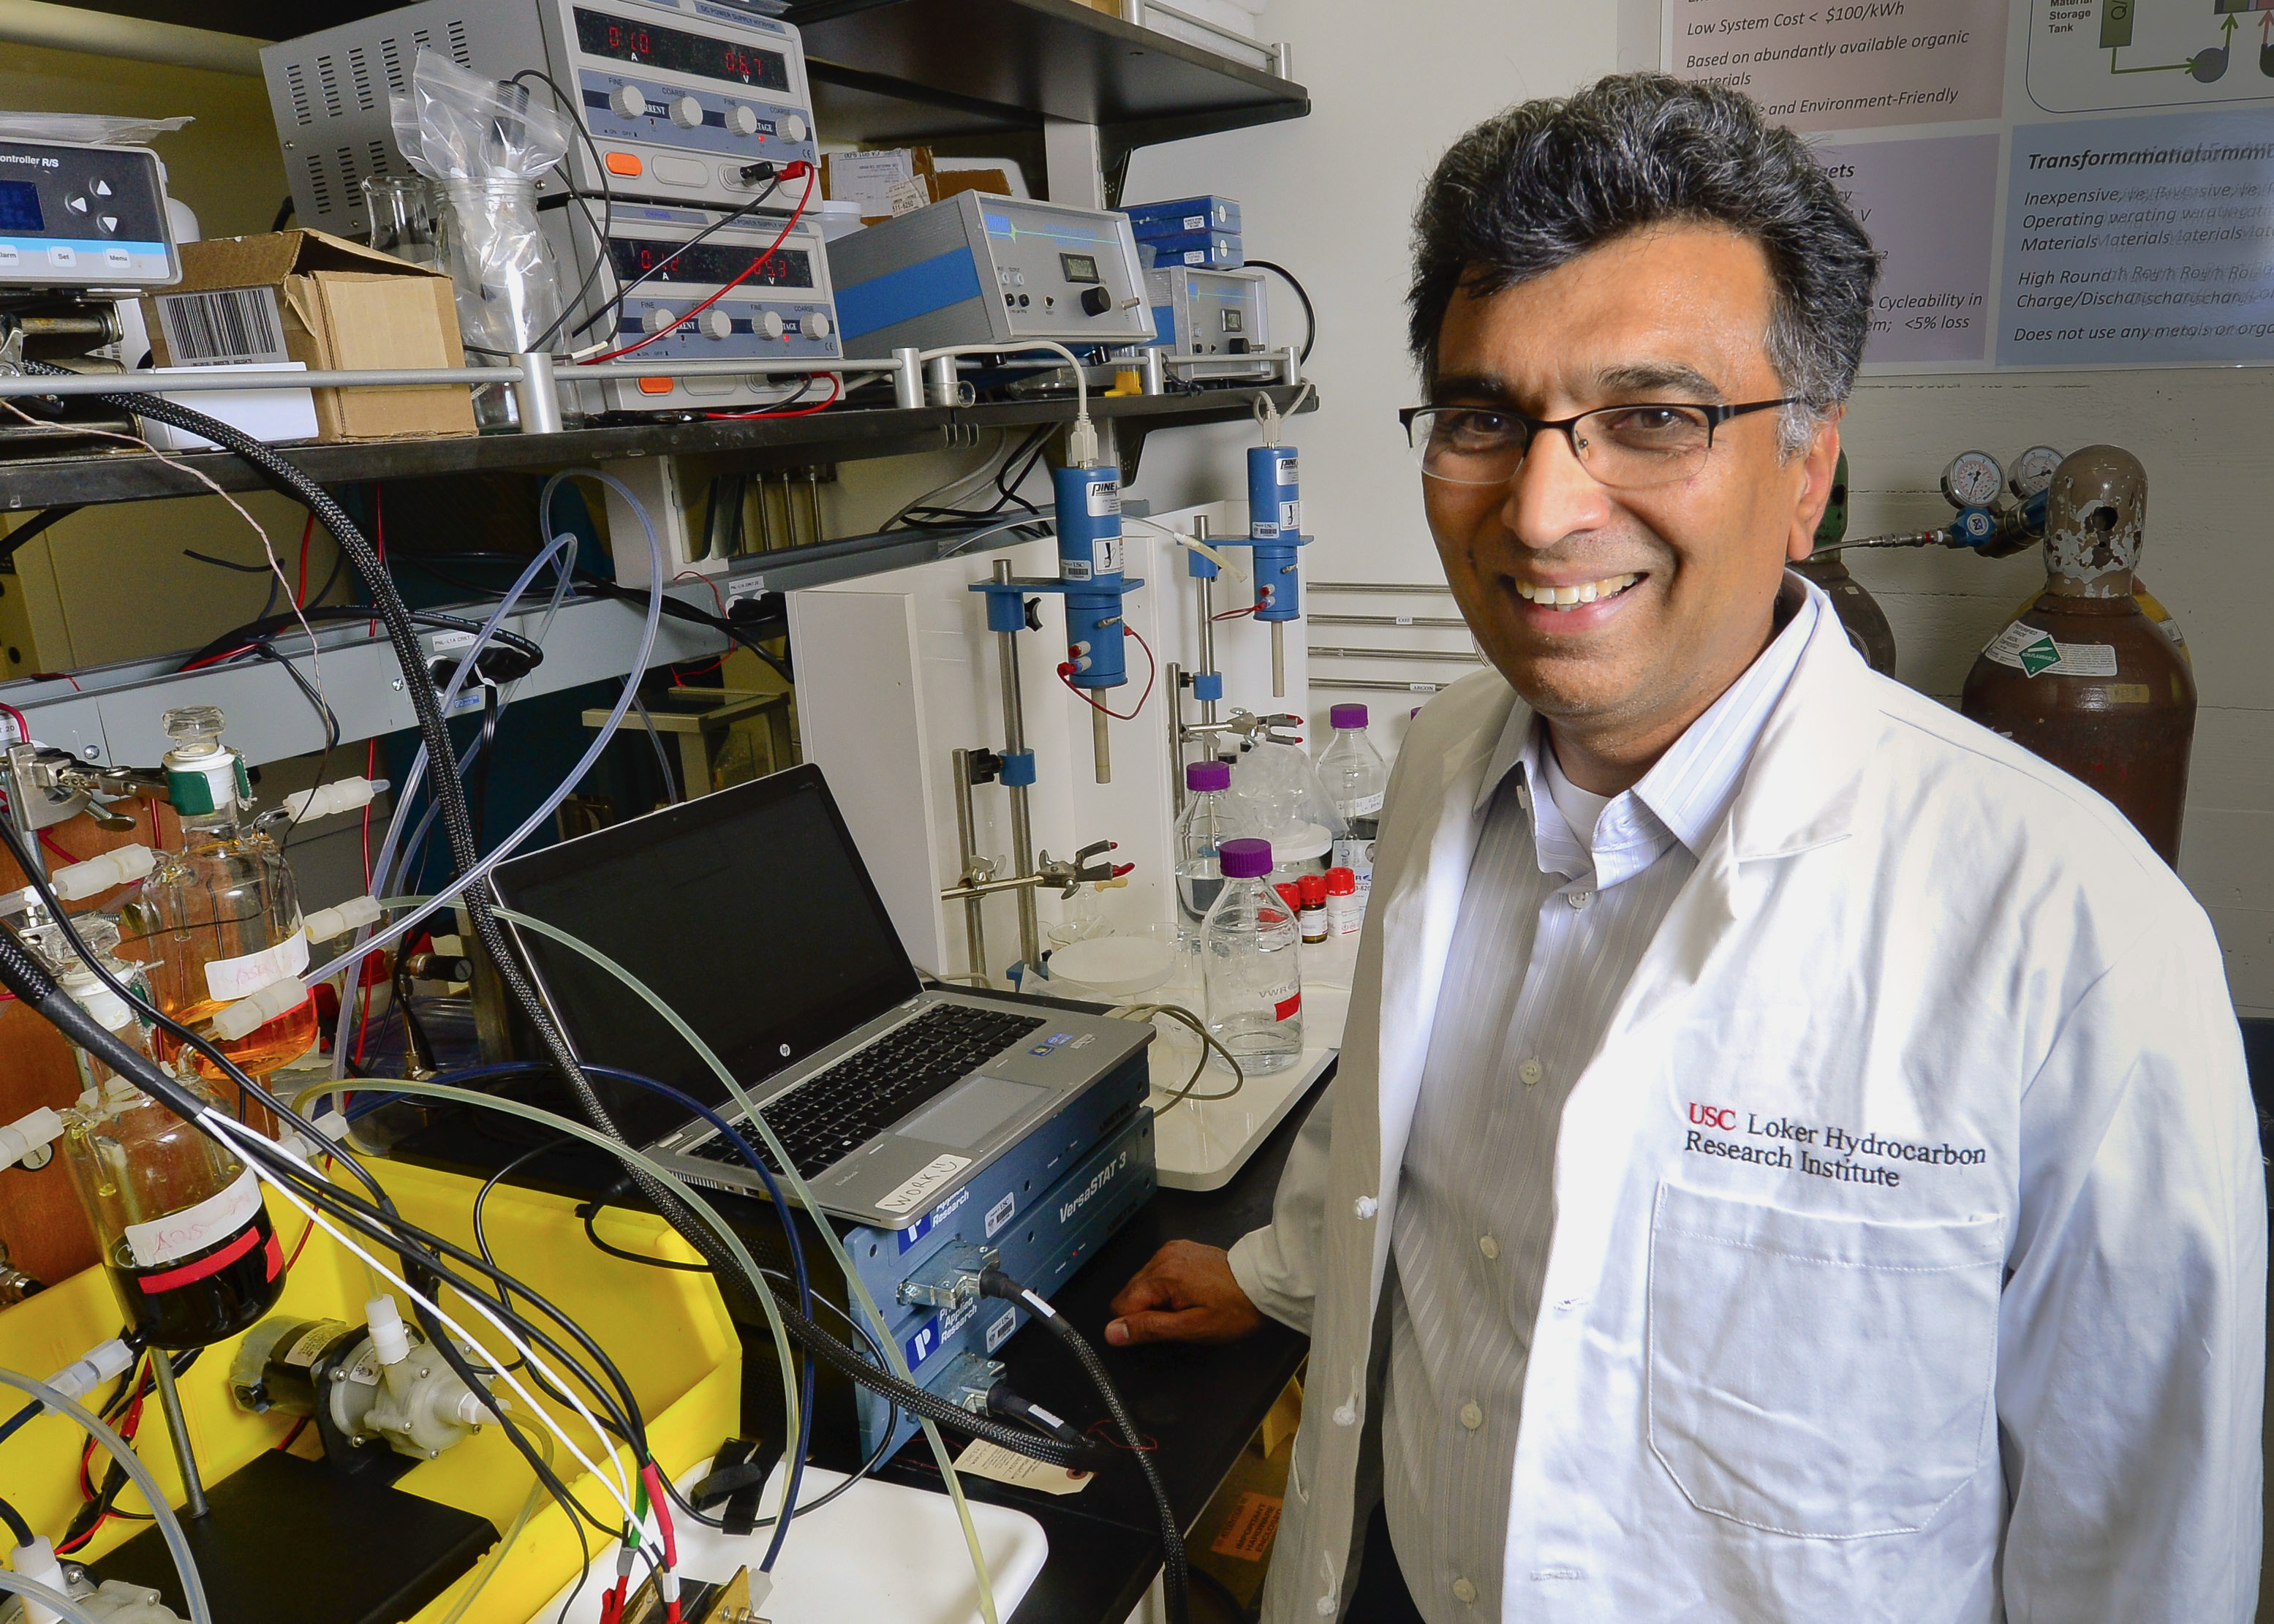 USC professor Sri Narayan working on an organic flow battery. Image courtesy of USC Photo / Gus Ruelas.